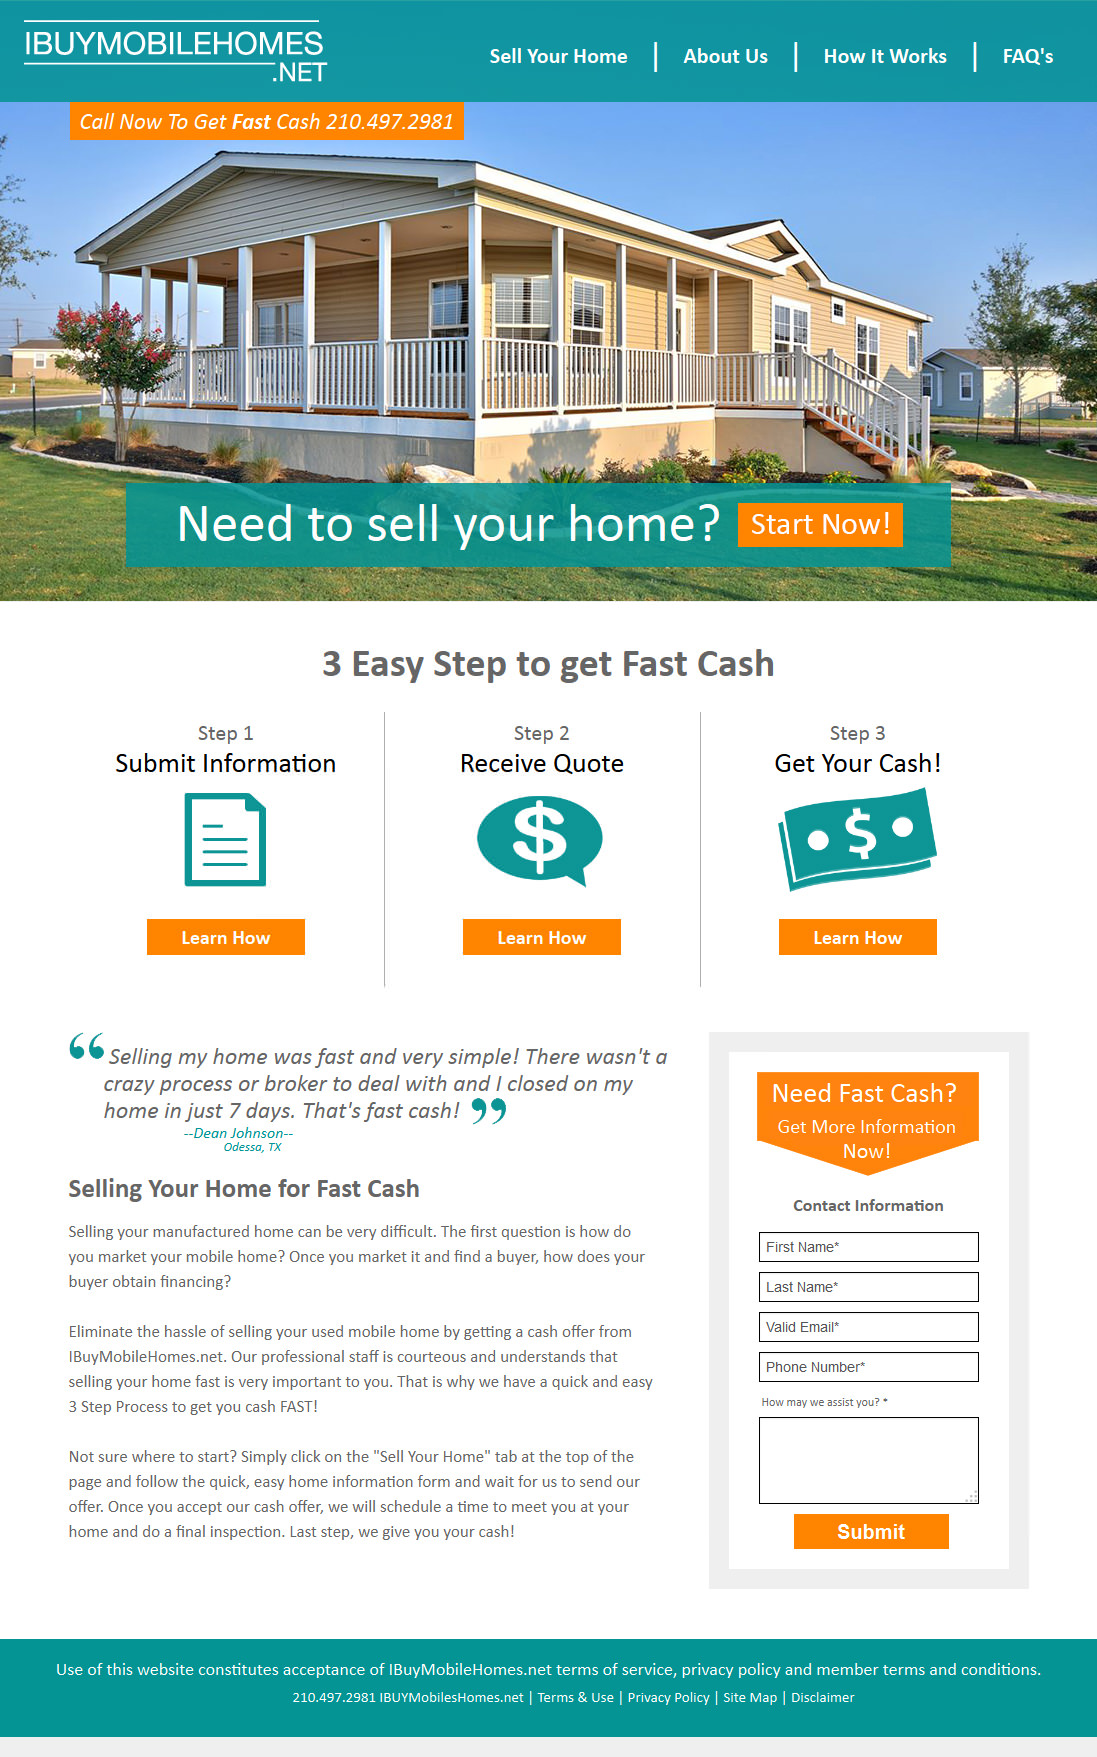 Our Works on trailers mobile homes, remodel mobile homes, i buy cars, we buy mobile homes, i buy antiques, gold mobile homes,